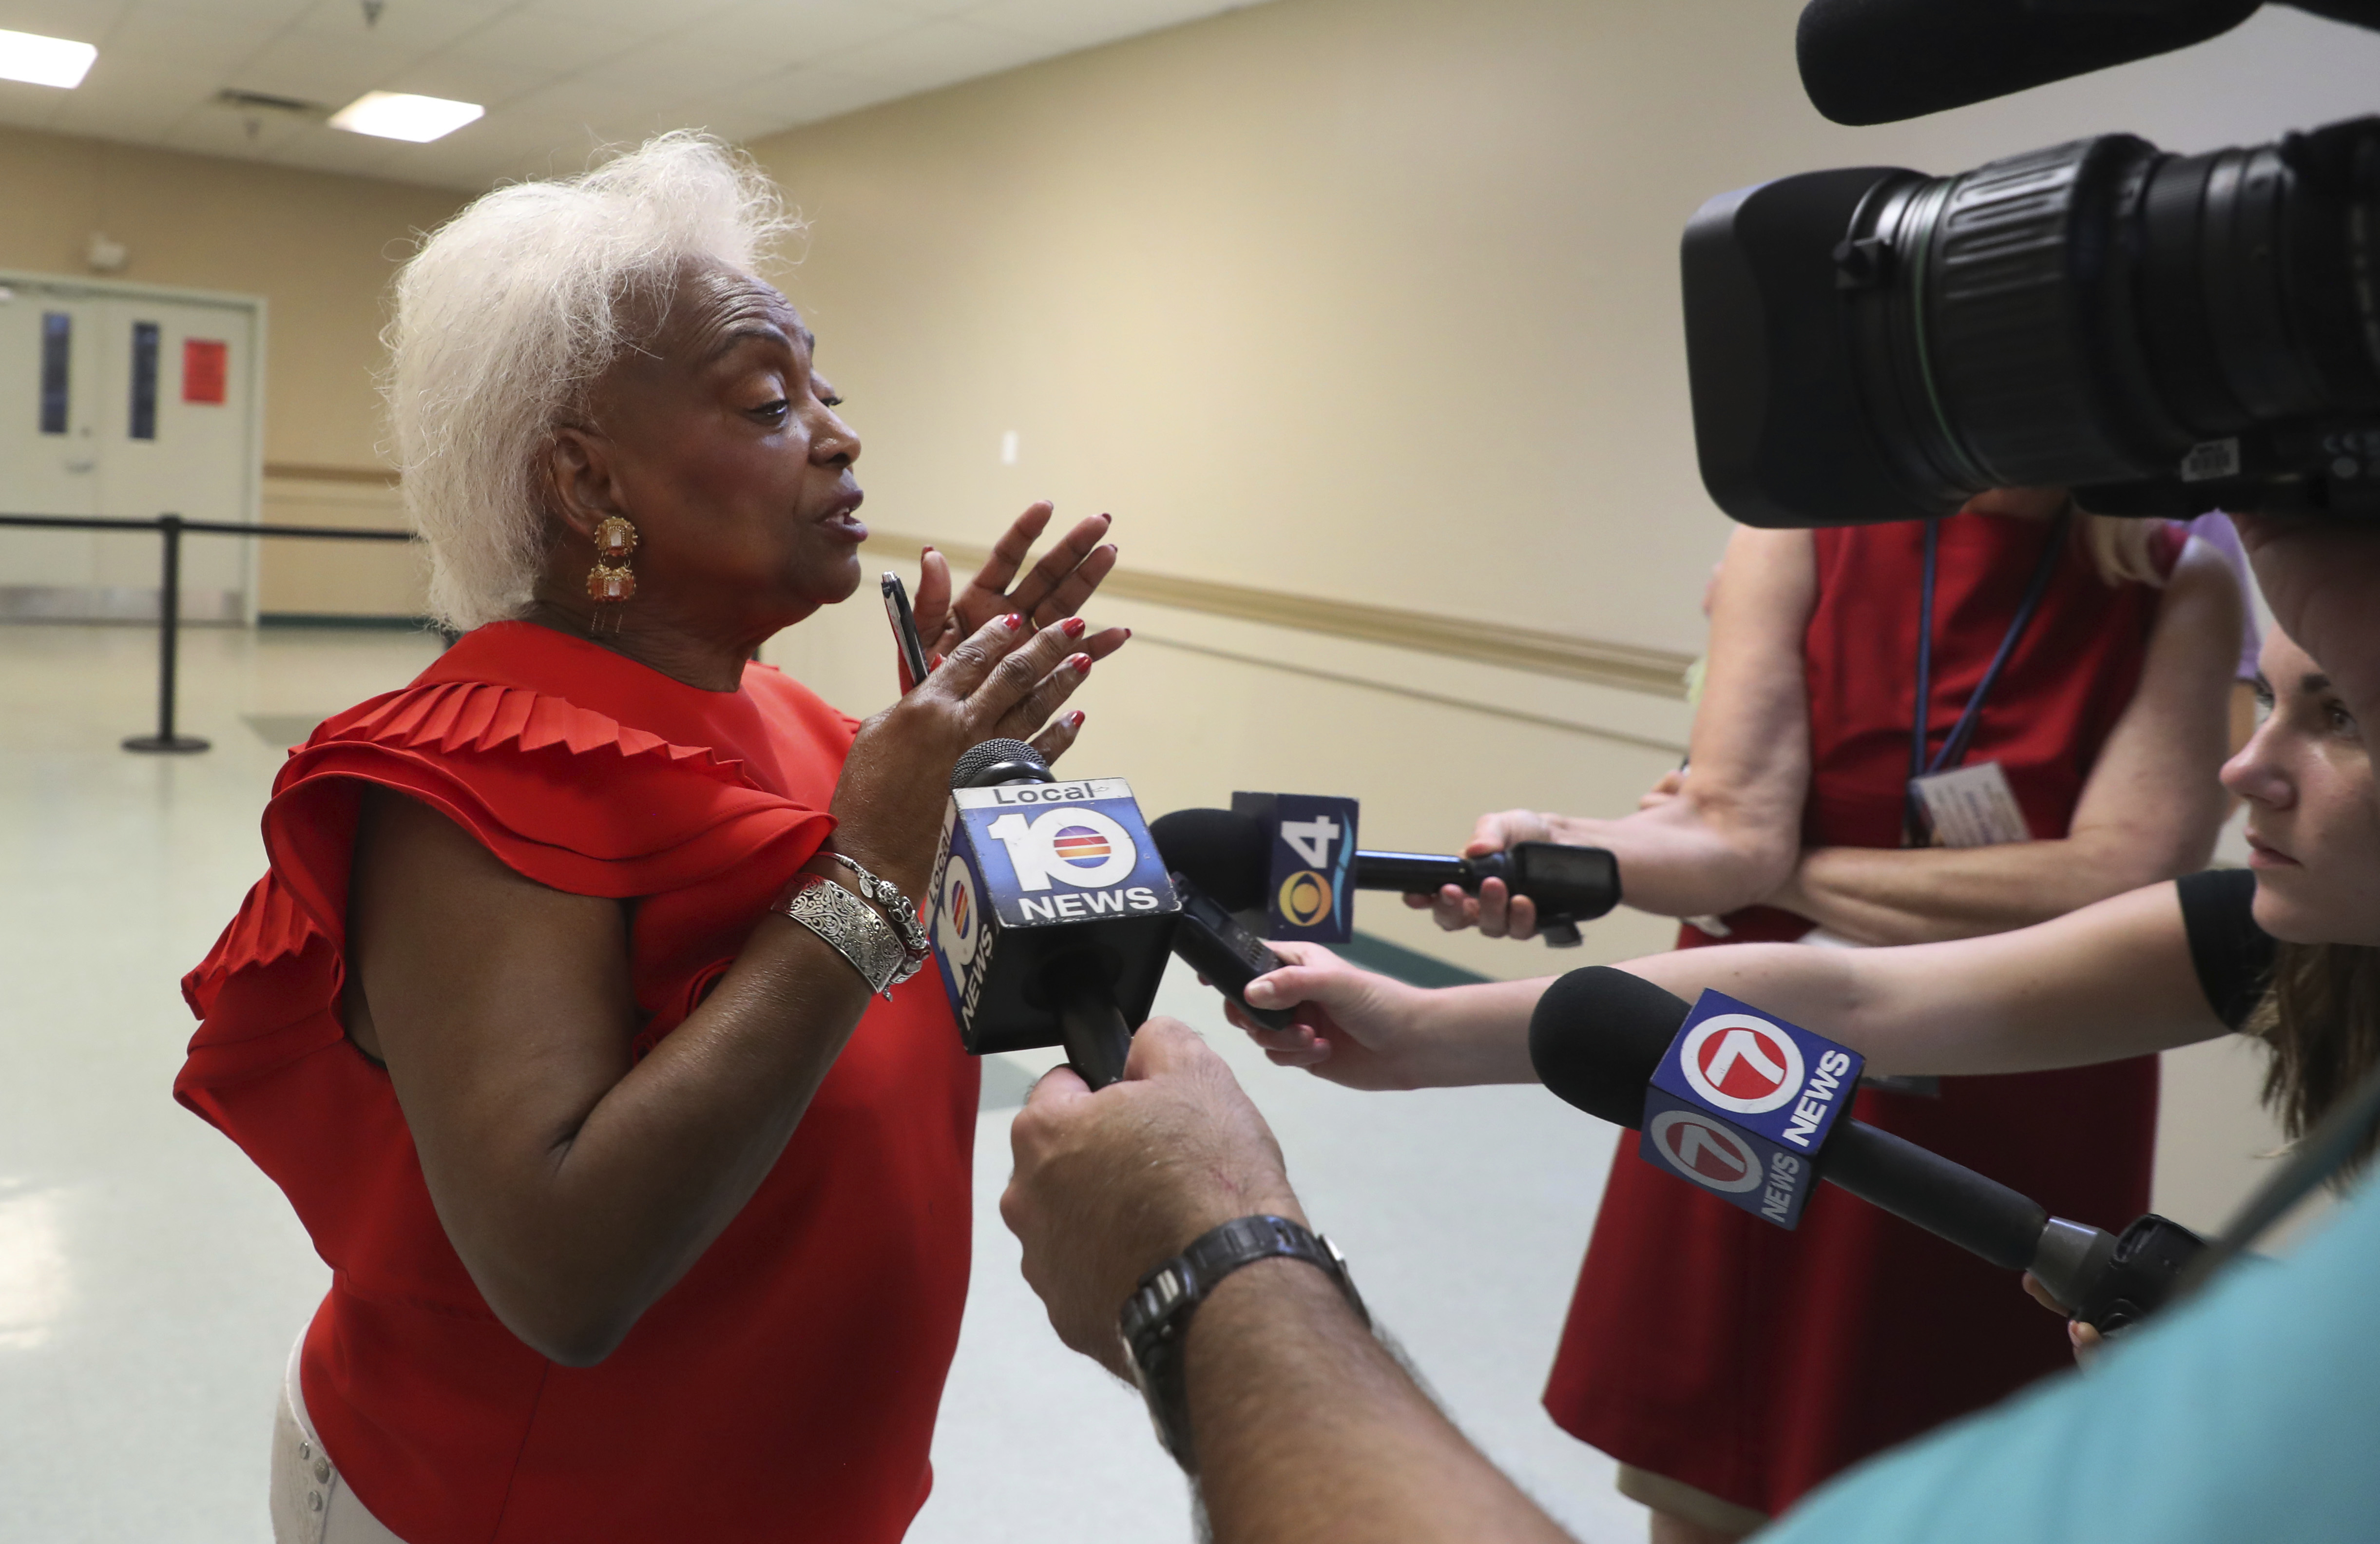 Broward County: Inside the most controversial elections